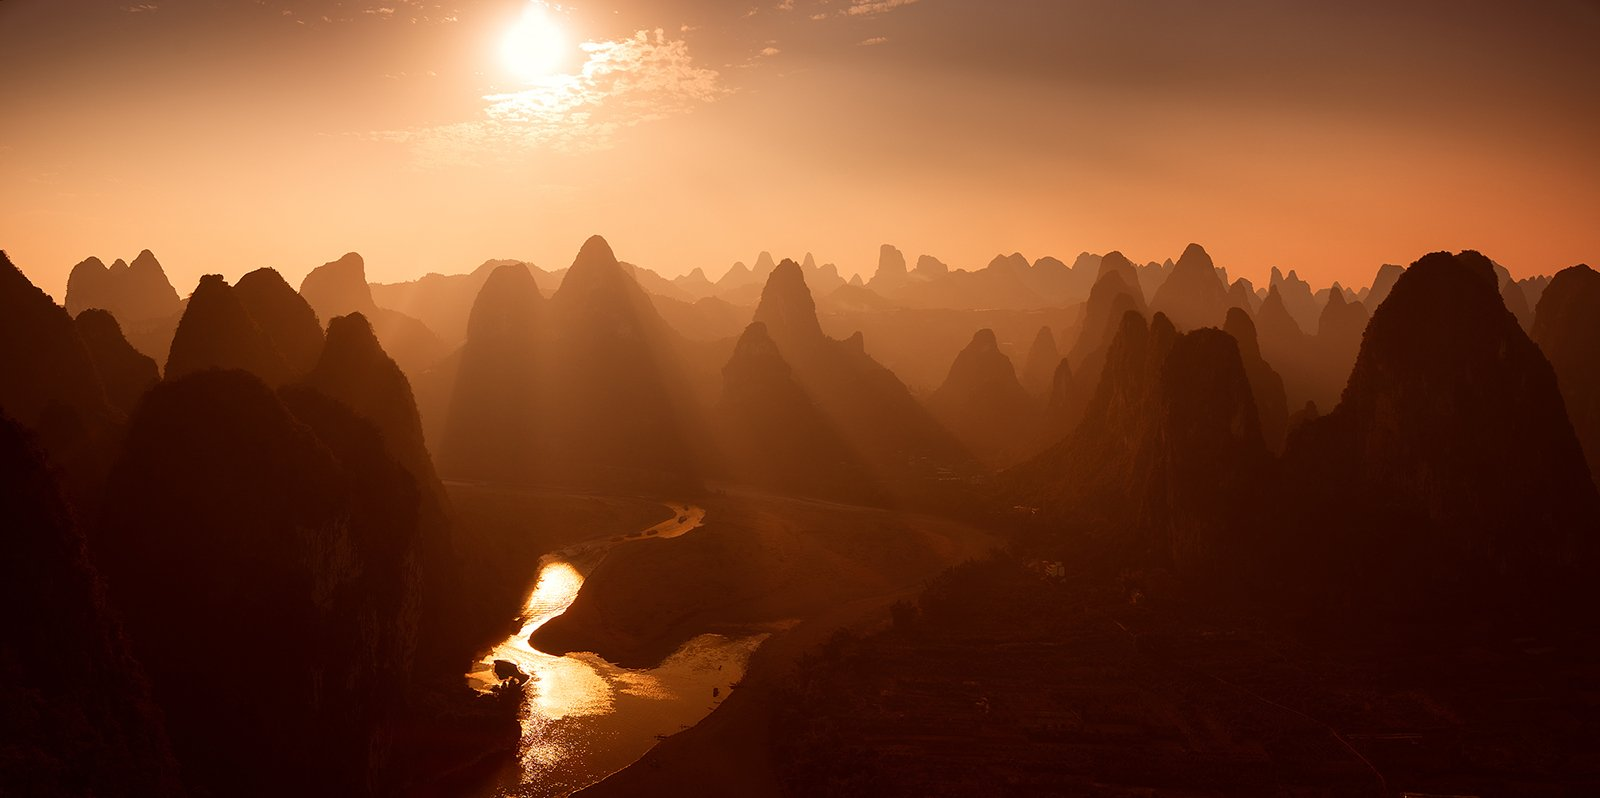 china, guilin, xingping, li, river, carst, mountains, sunset, Сергей Кузнецов